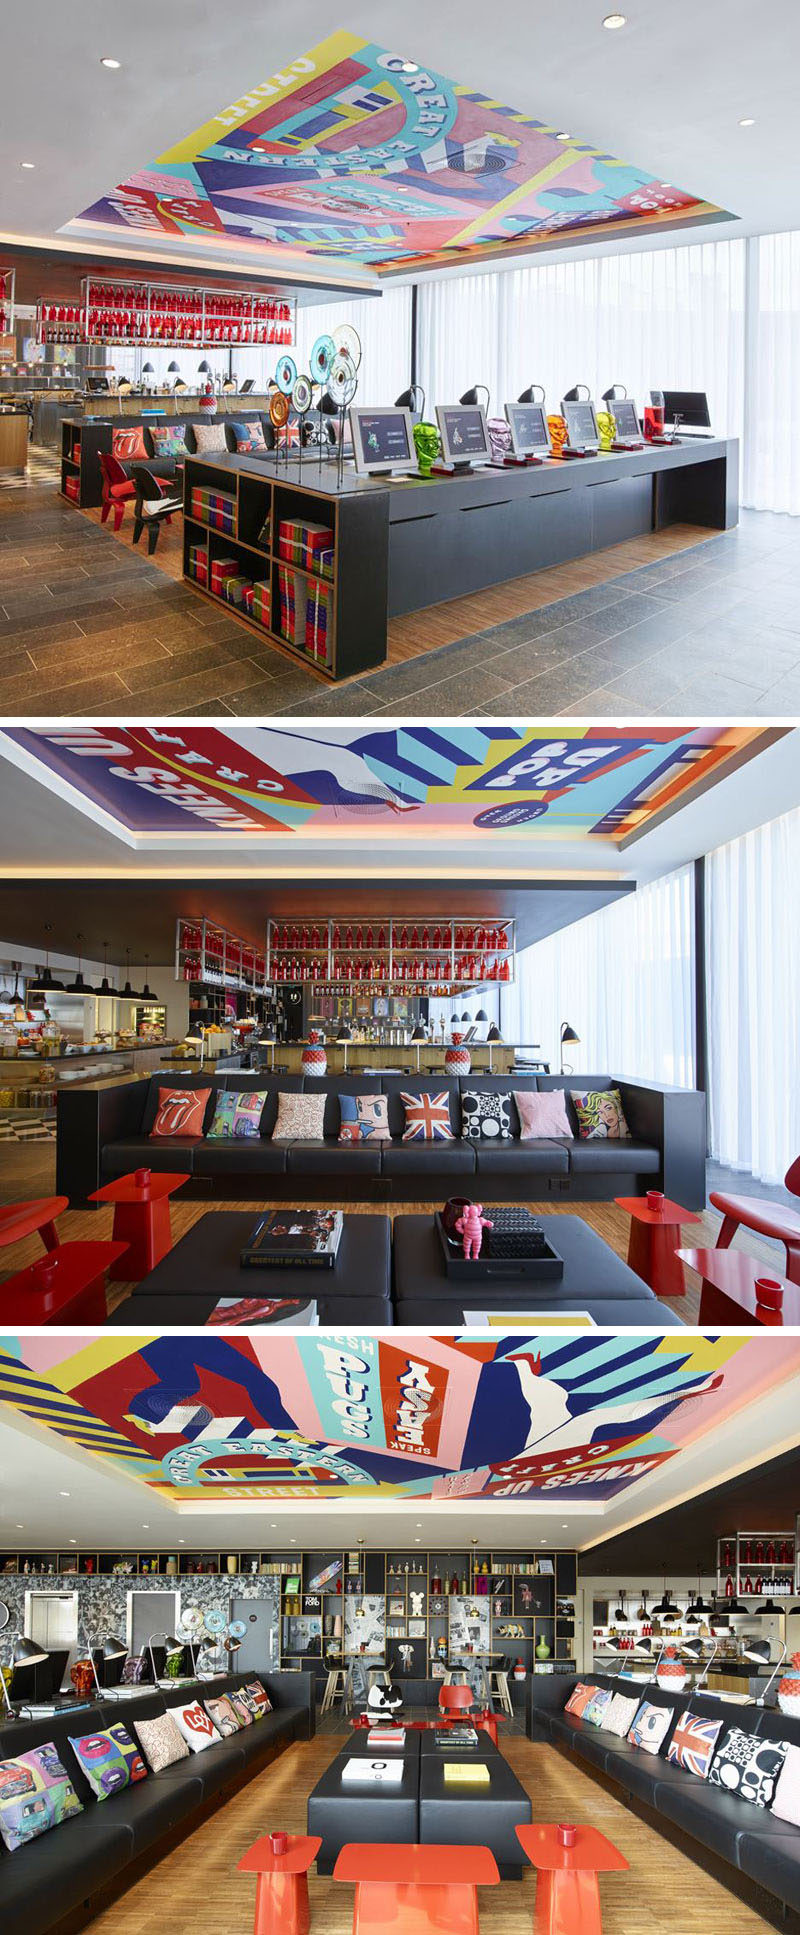 Interior Design Idea - Create A Defined Area By Recessing The Ceiling